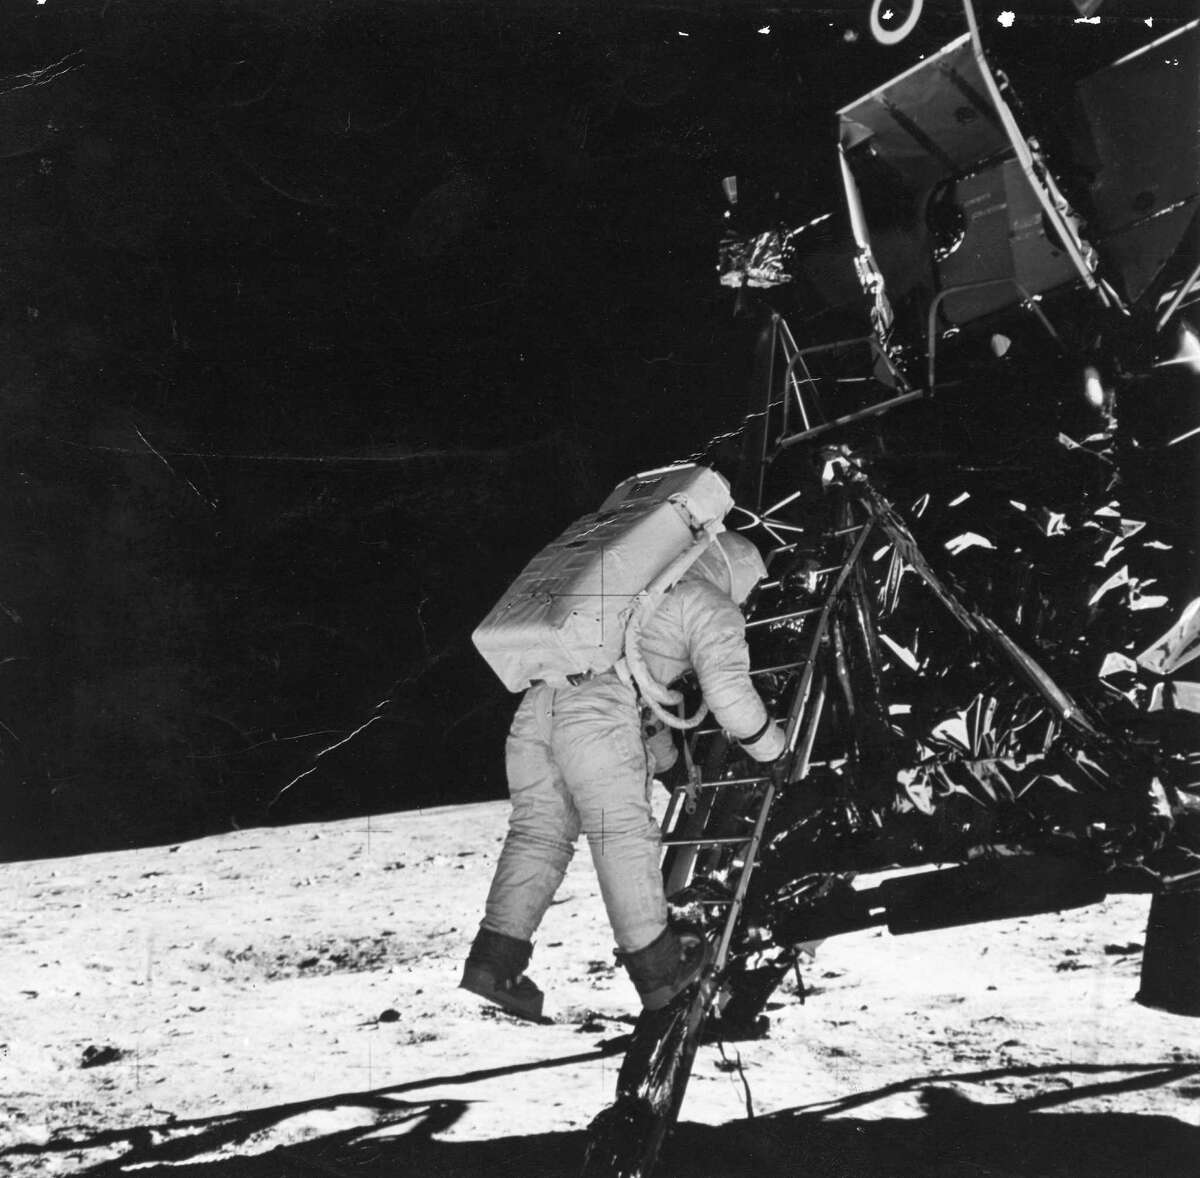 """Astronaut Edwin """"Buzz"""" Aldrin, lunar module pilot, descends the steps as he prepares to walk on the moon in 1969. The photo was made by fellow astronaut Neil Armstrong."""